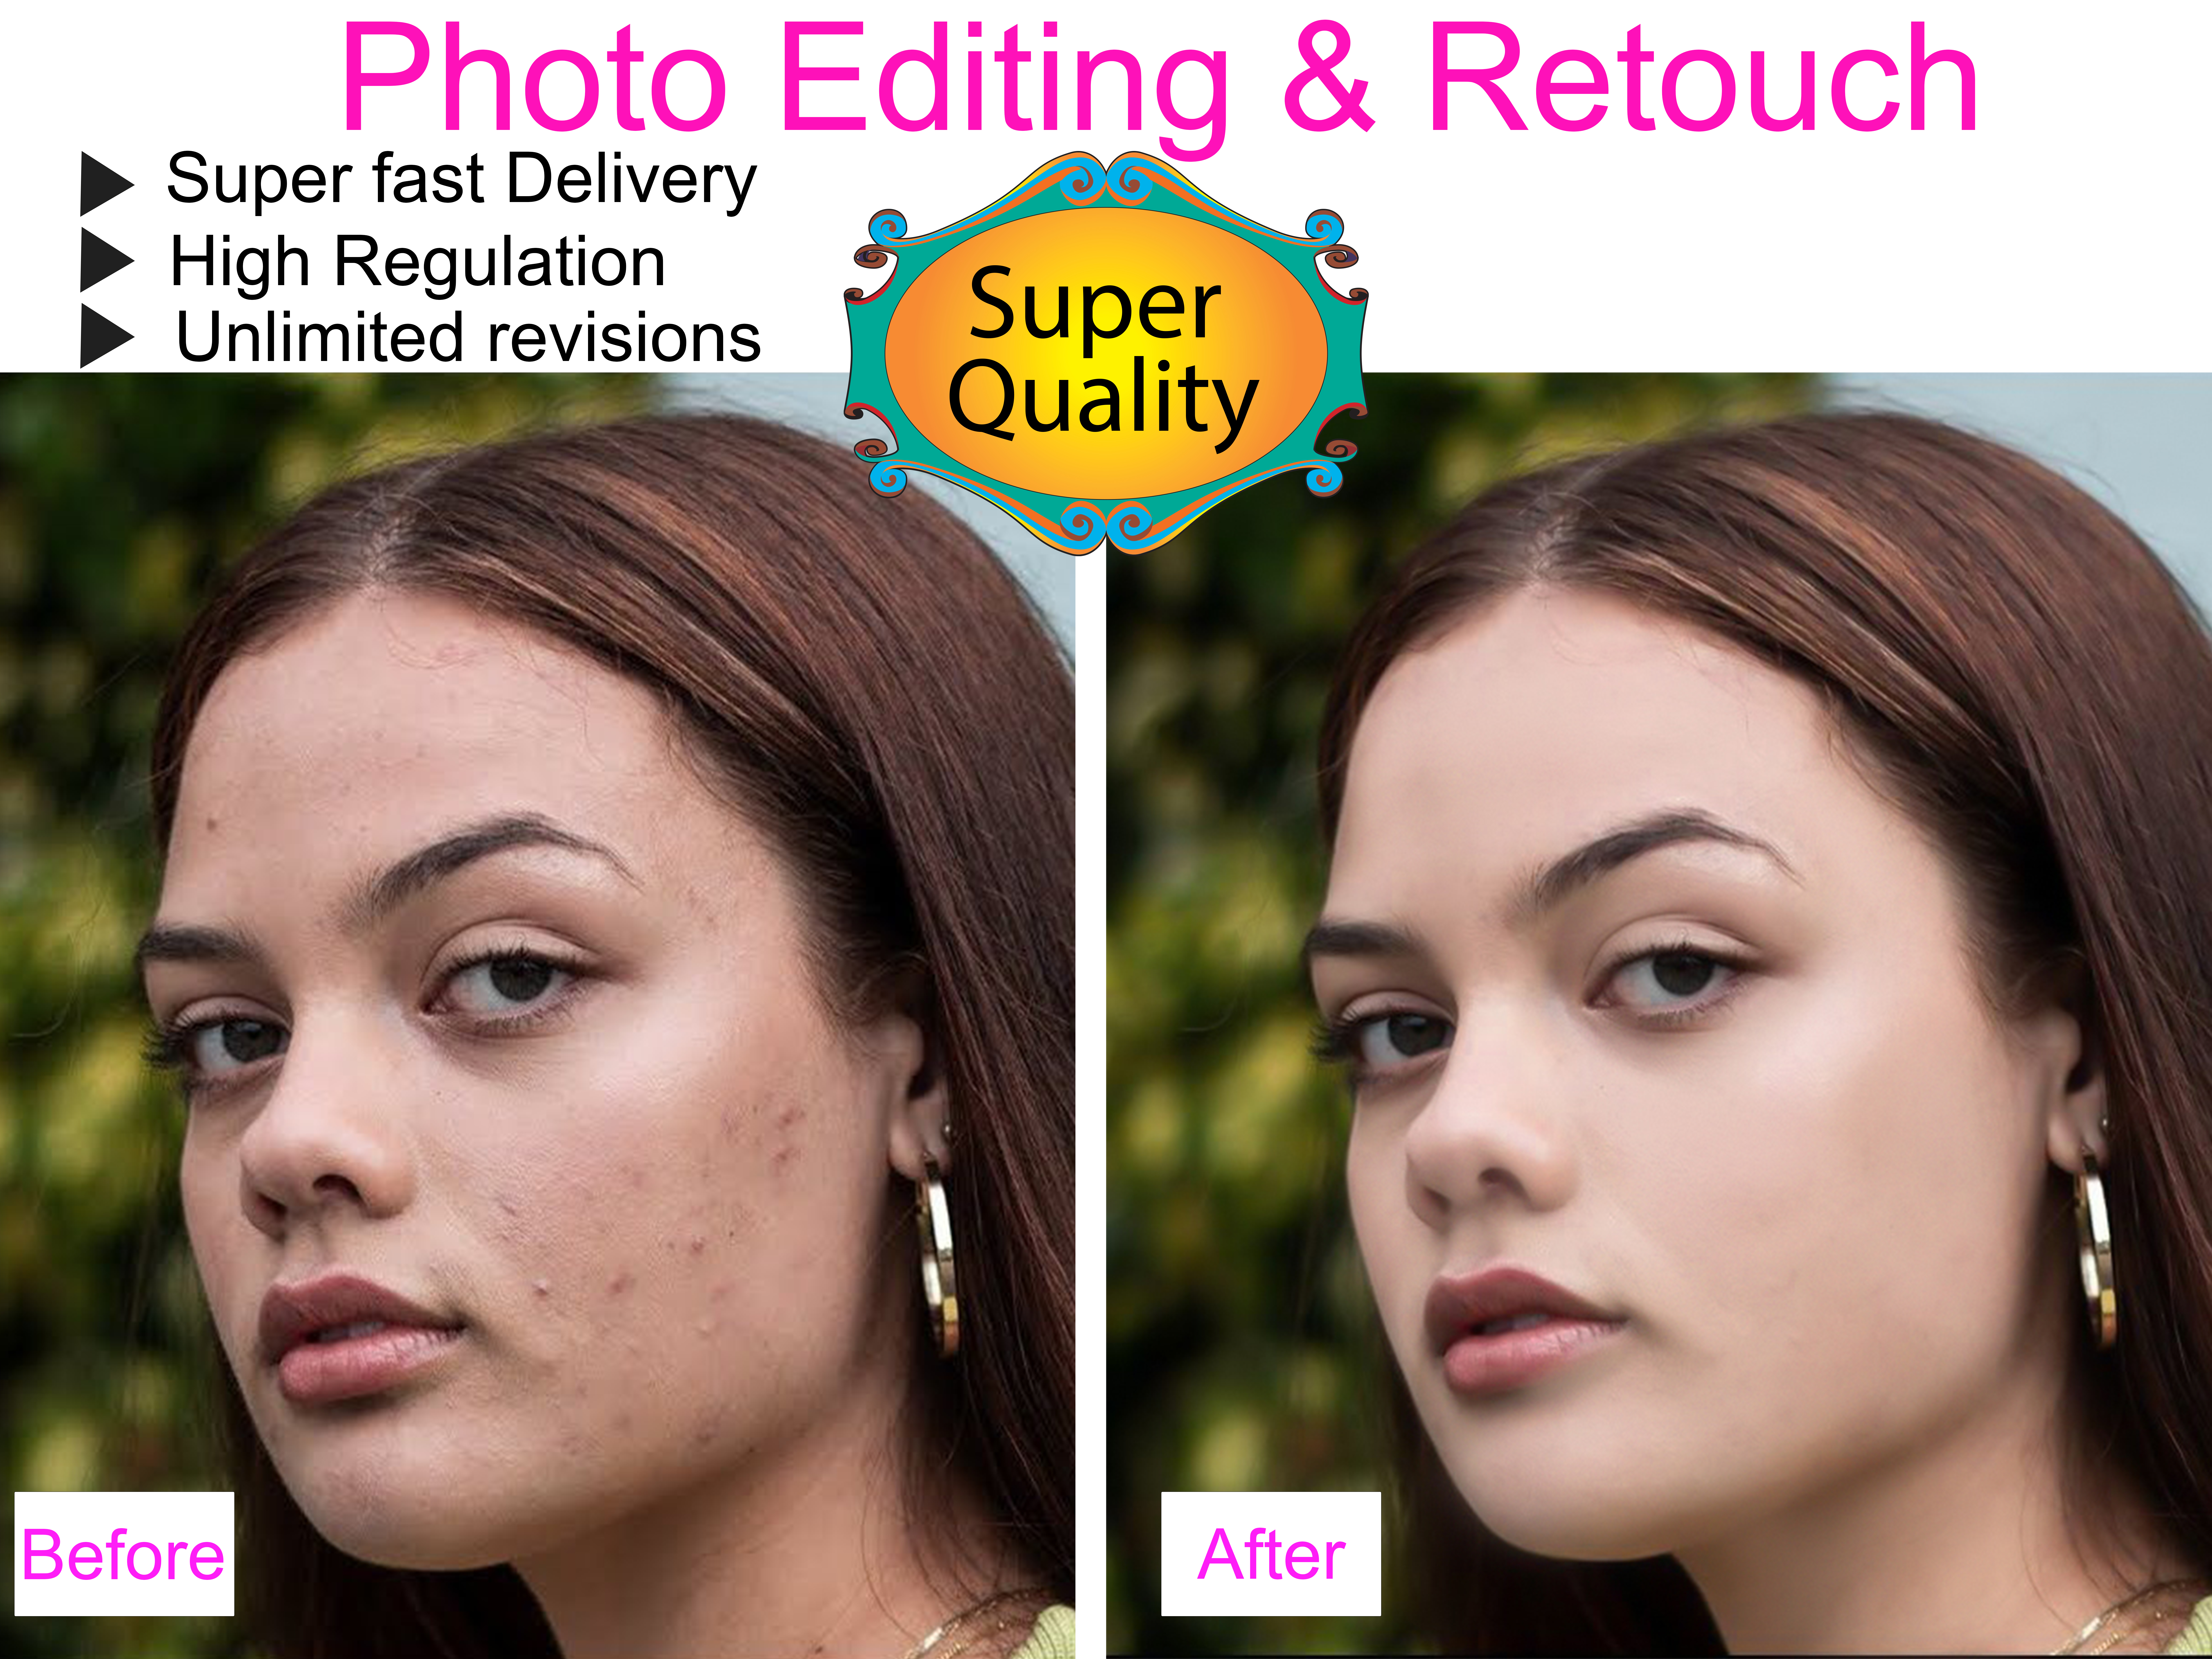 I will do can any photo editing and photo retouching